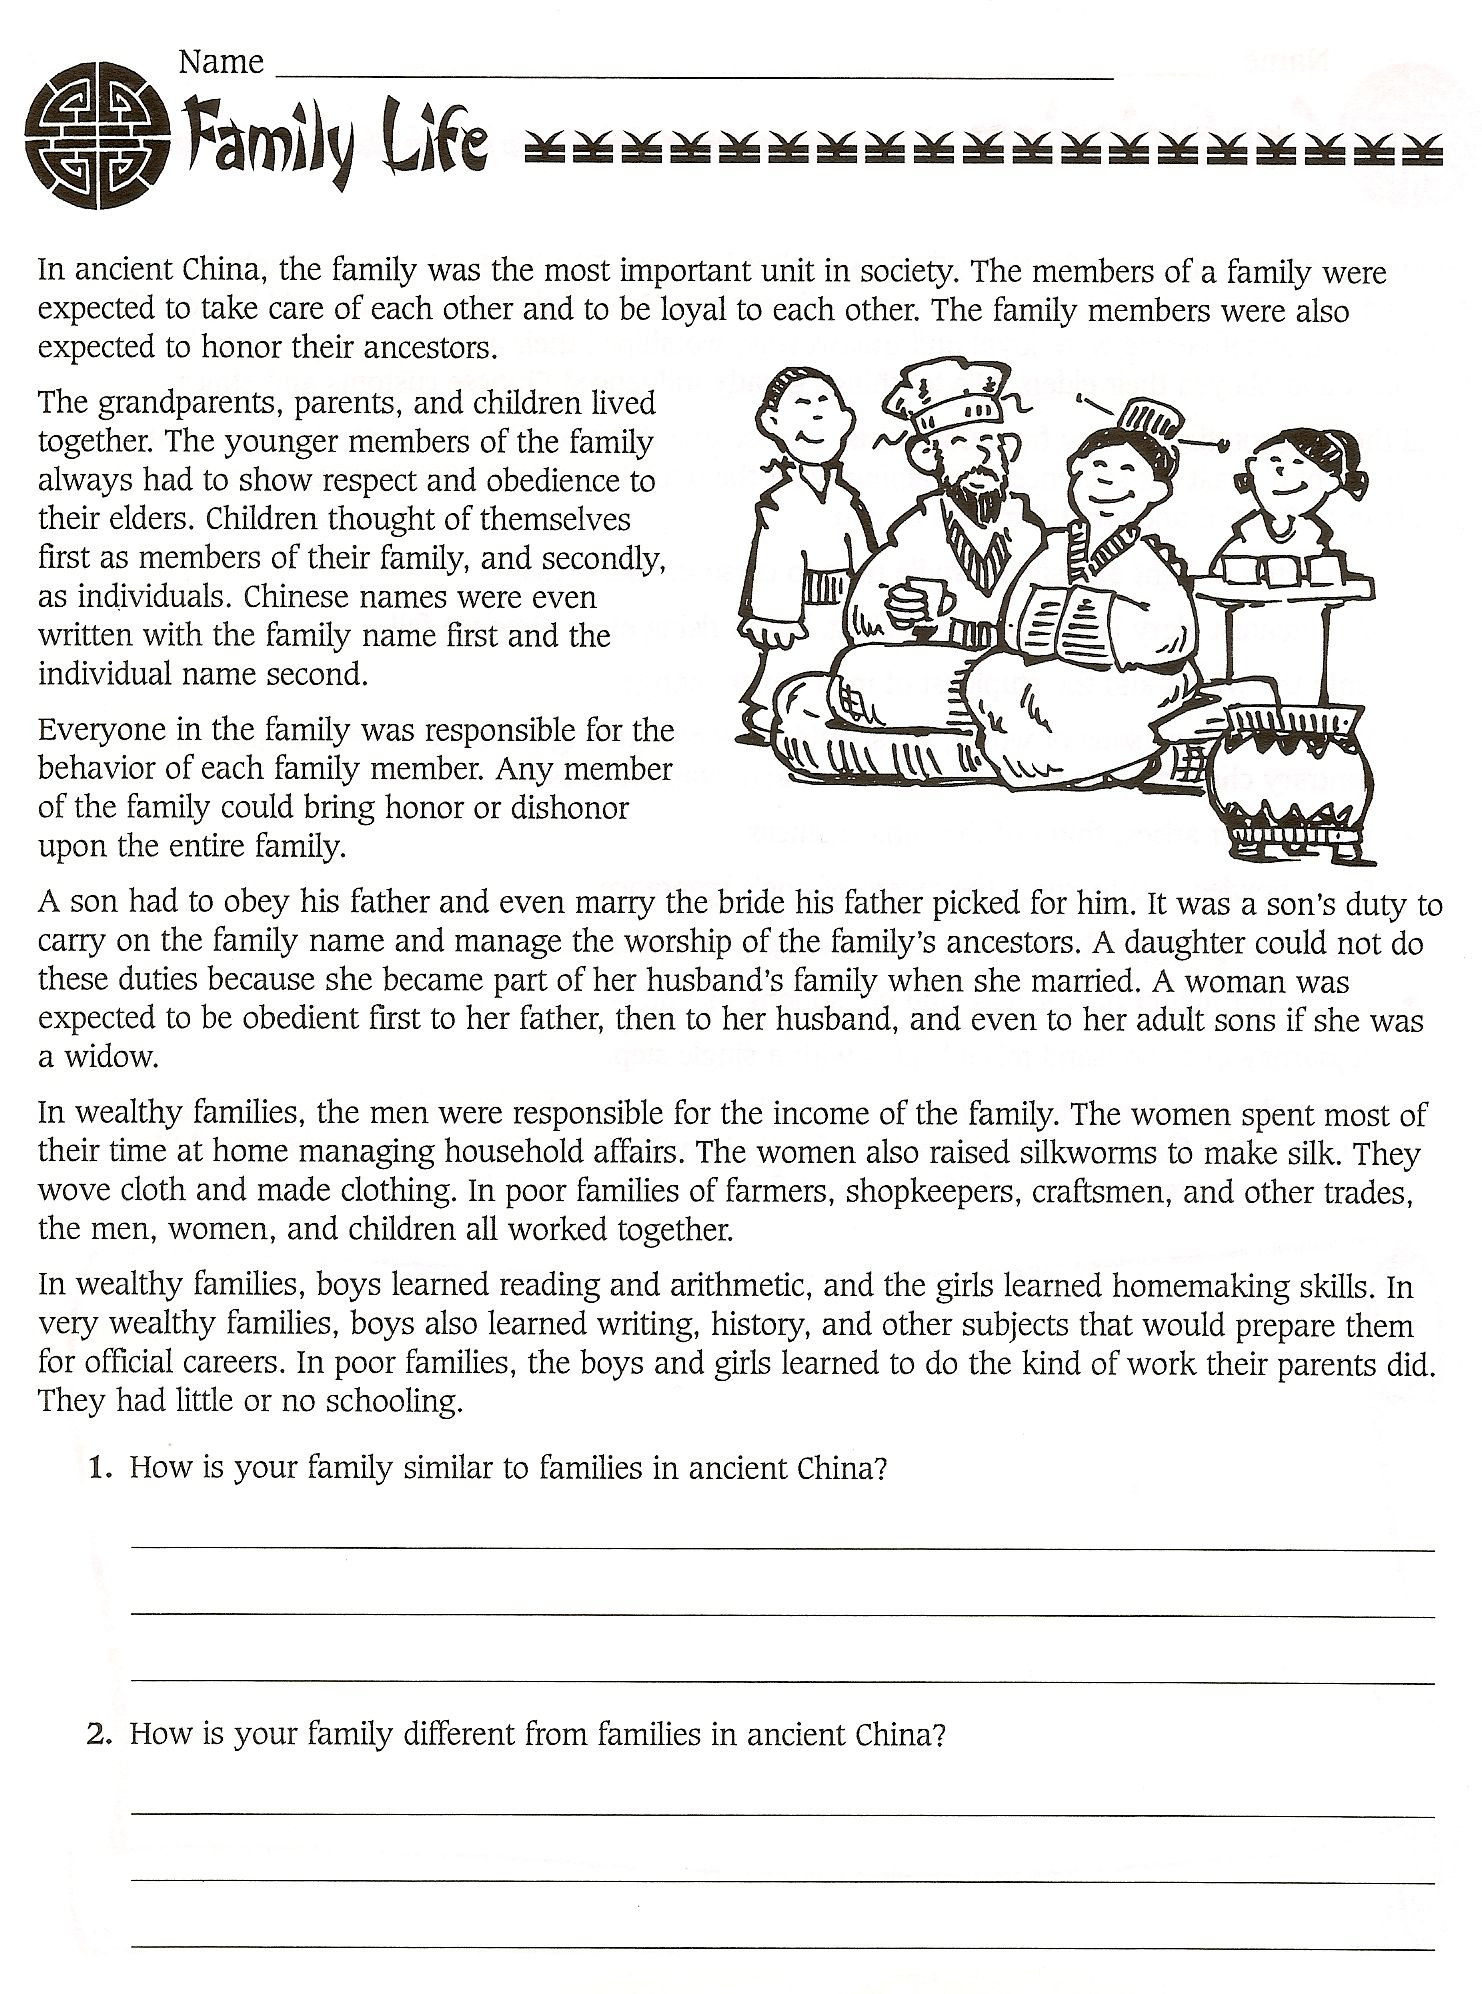 6th Grade History Worksheets 6th Grade social Stu S Ancient China Worksheets Free